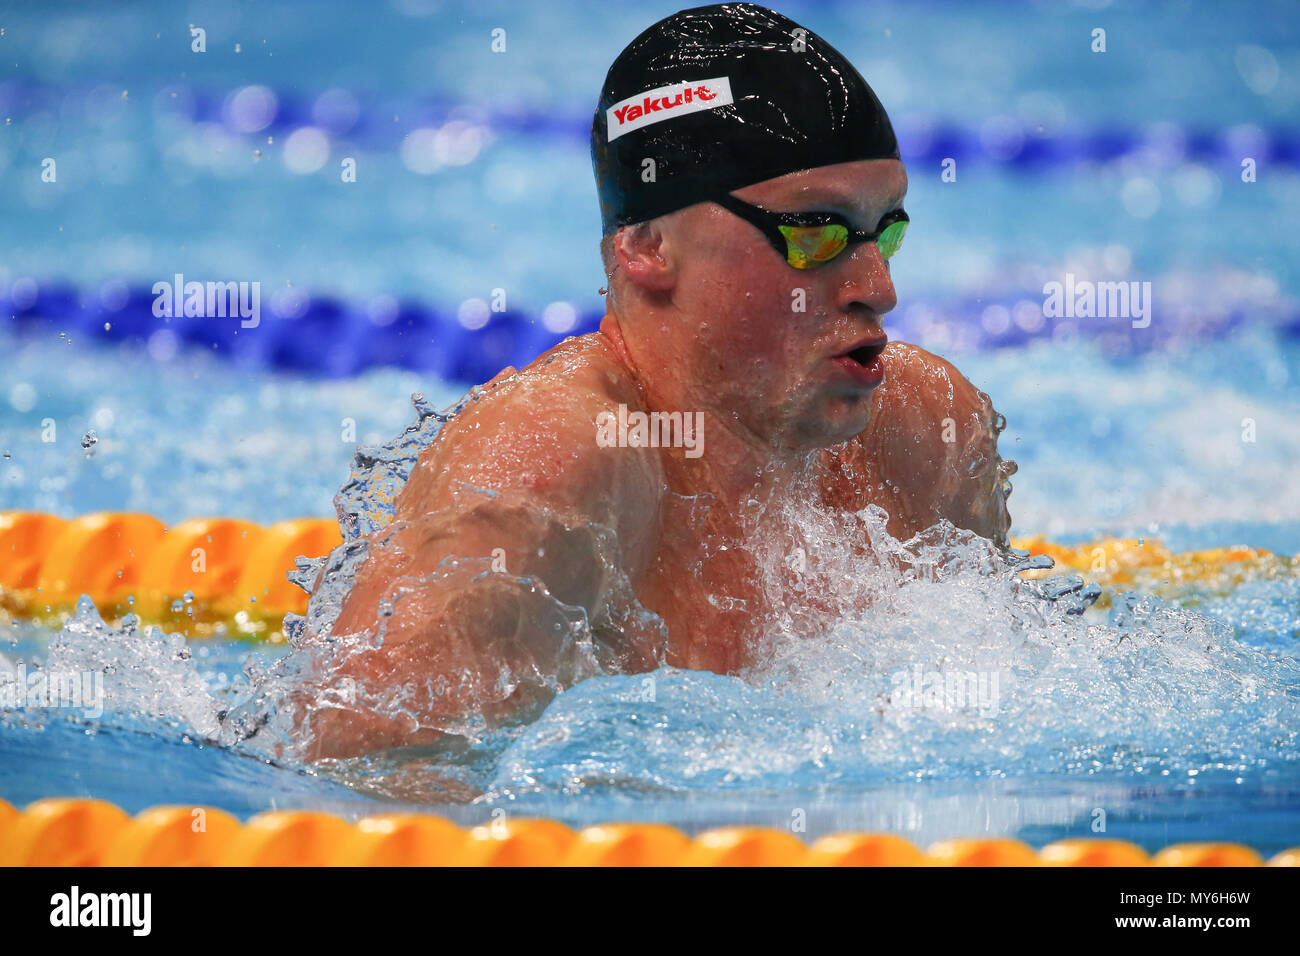 BUDAPEST, HUNGARY - JULY 23: Adam Peaty of Great Britain in the heats of the mens 100m breaststroke during day 10 of the FINA World Championships at Duna Arena on July 23, 2017 in Budapest, Hungary. (Photo by Roger Sedres/ImageSA) - Stock Image